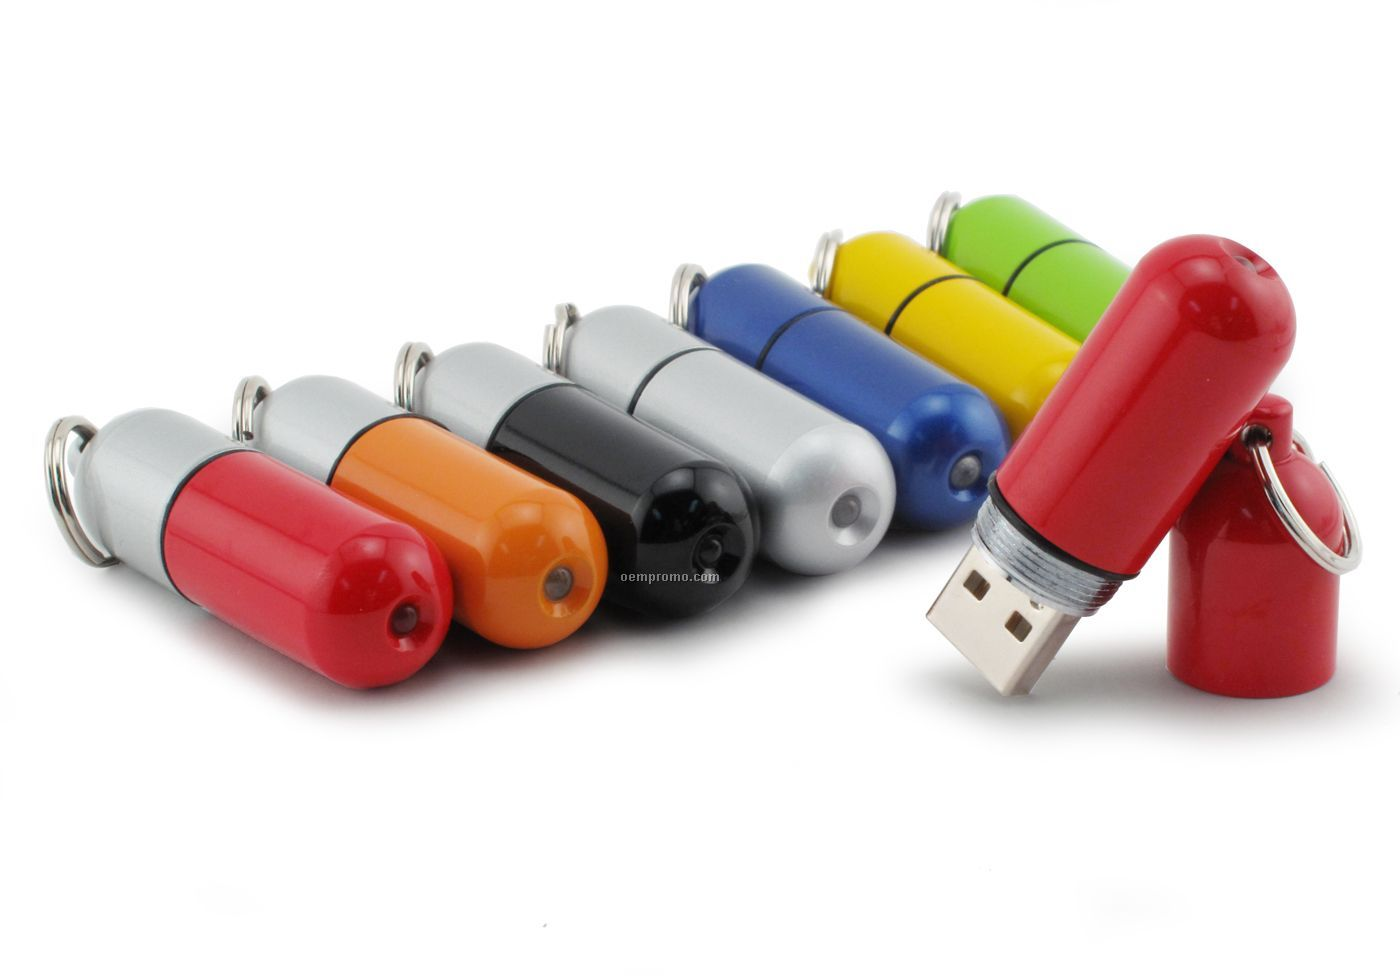 4 Gb Specialty 300 Series USB Drive - Capsule